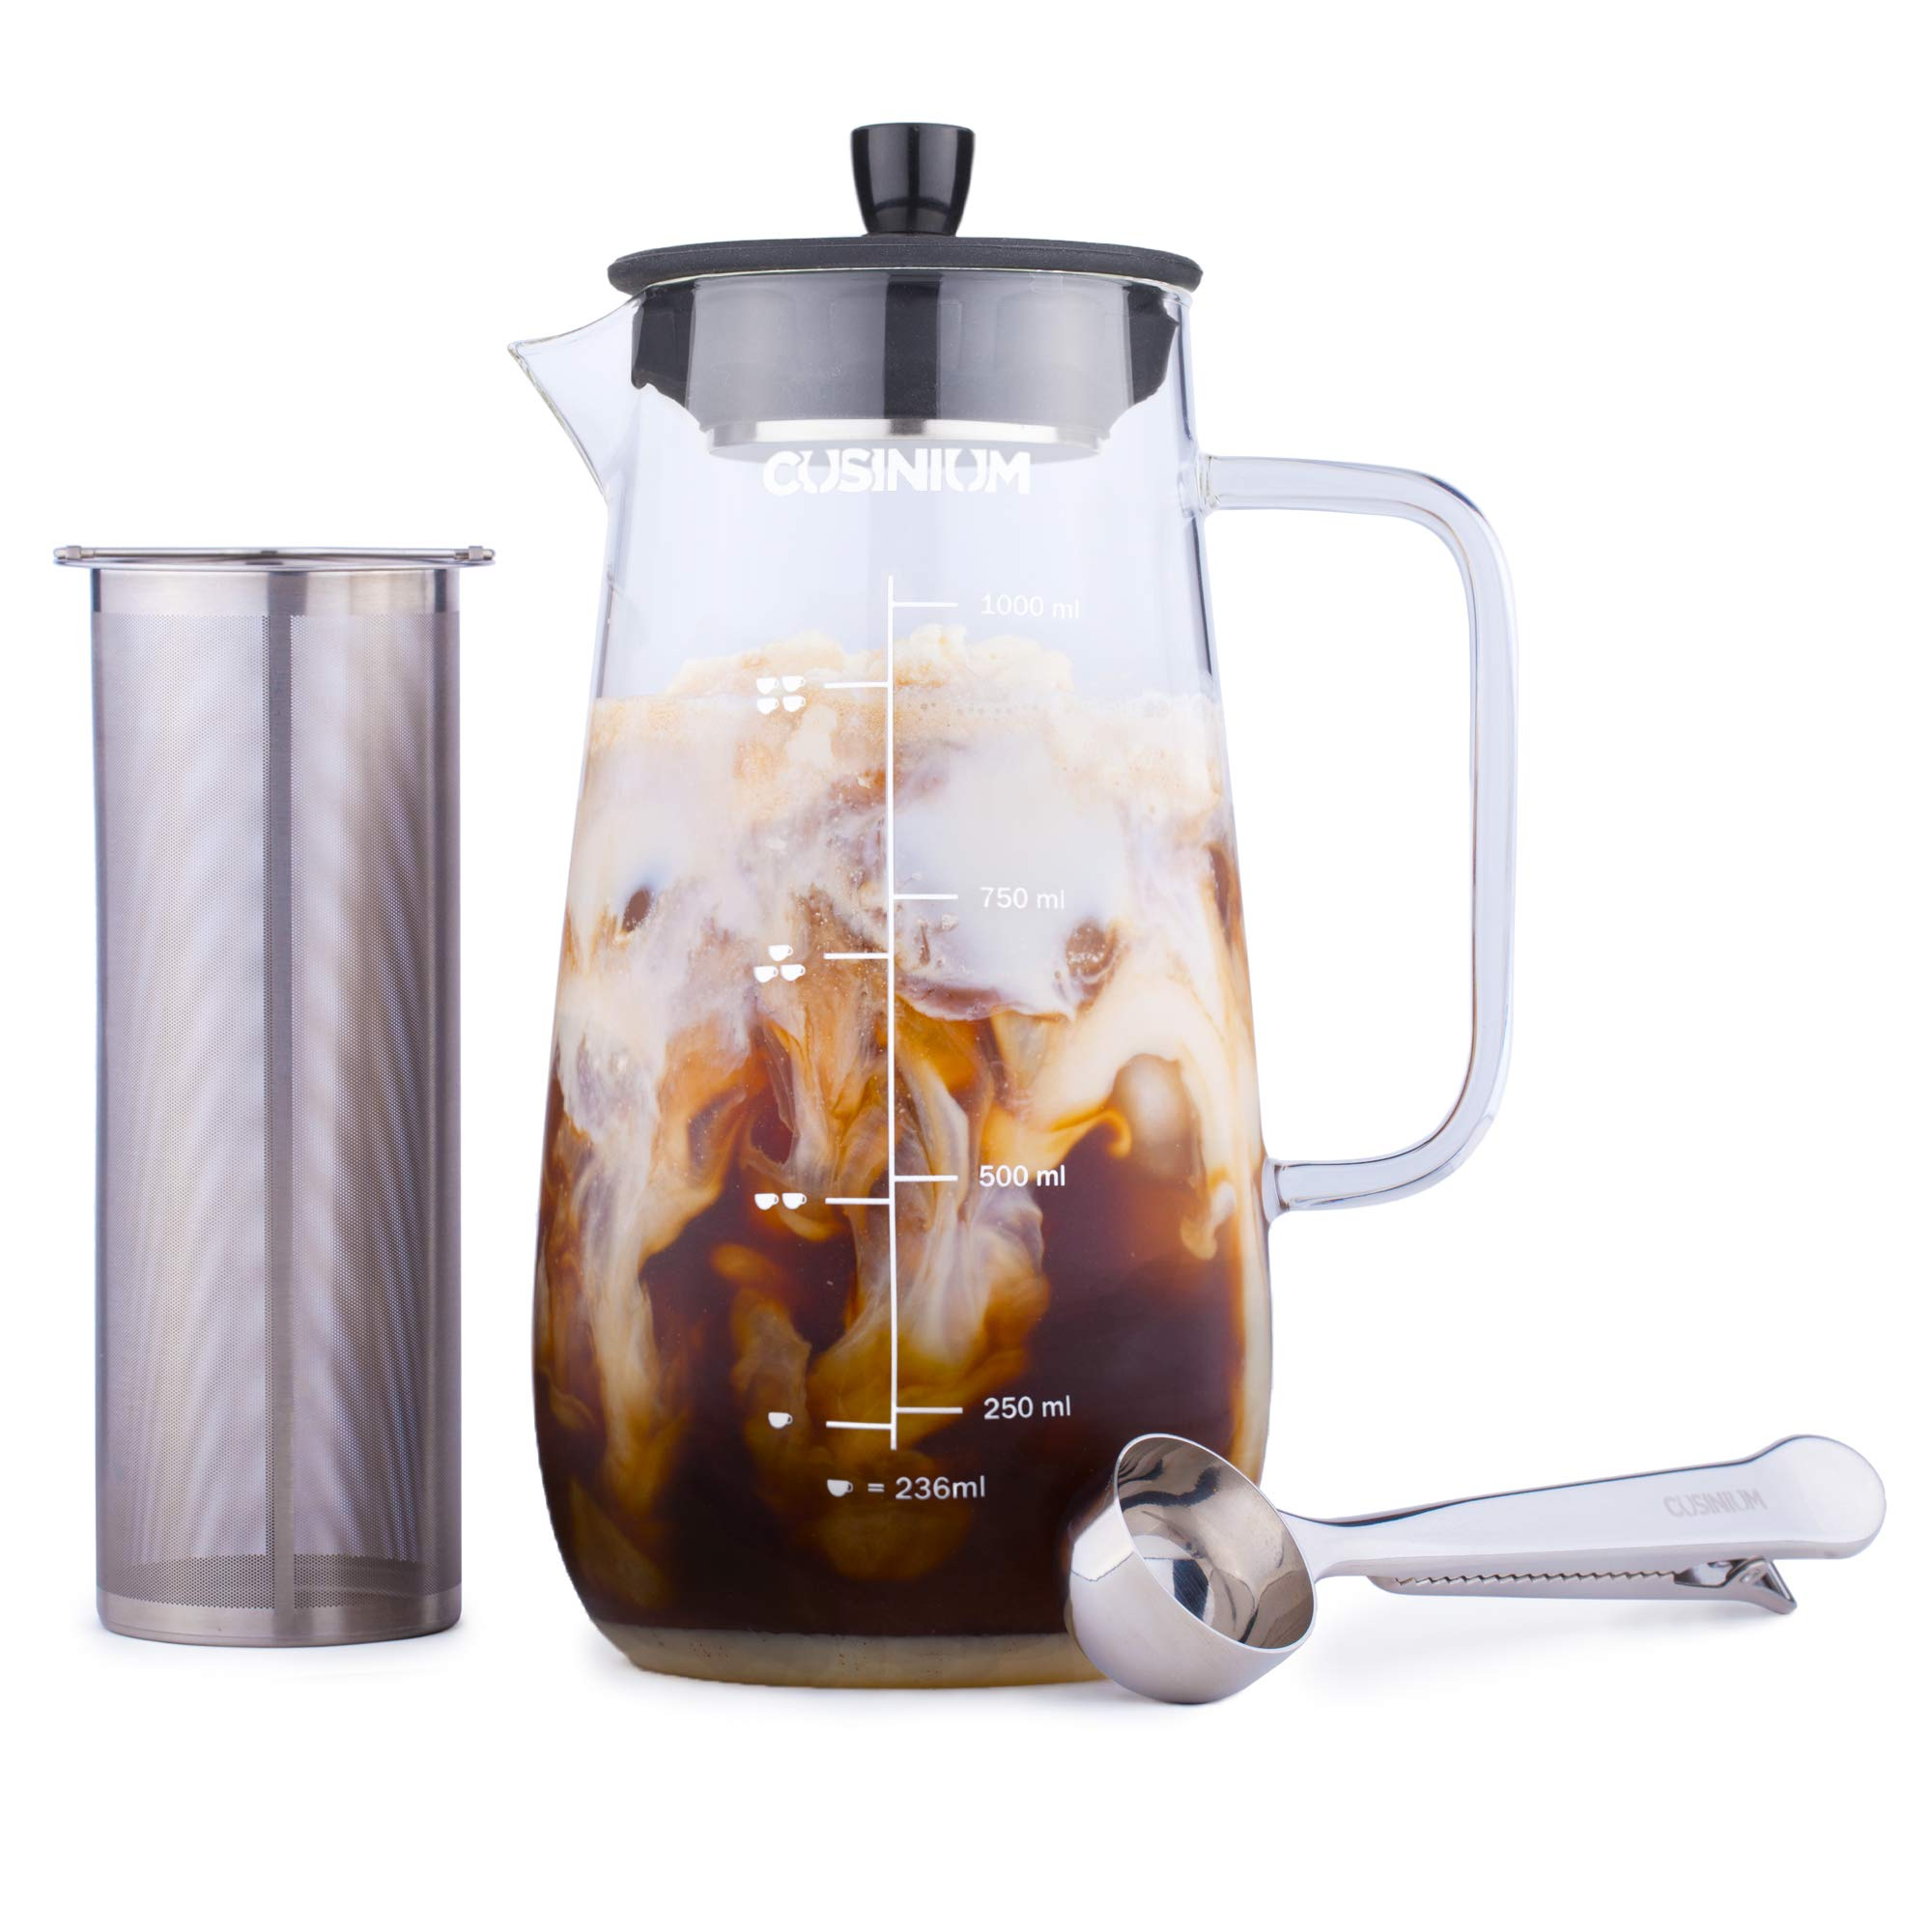 Cold Brewer - Cold Brew Kit - Iced Coffee Maker - Cold Brew Pitcher - Cold Brew Coffee Maker Large - Iced Coffee Pitcher